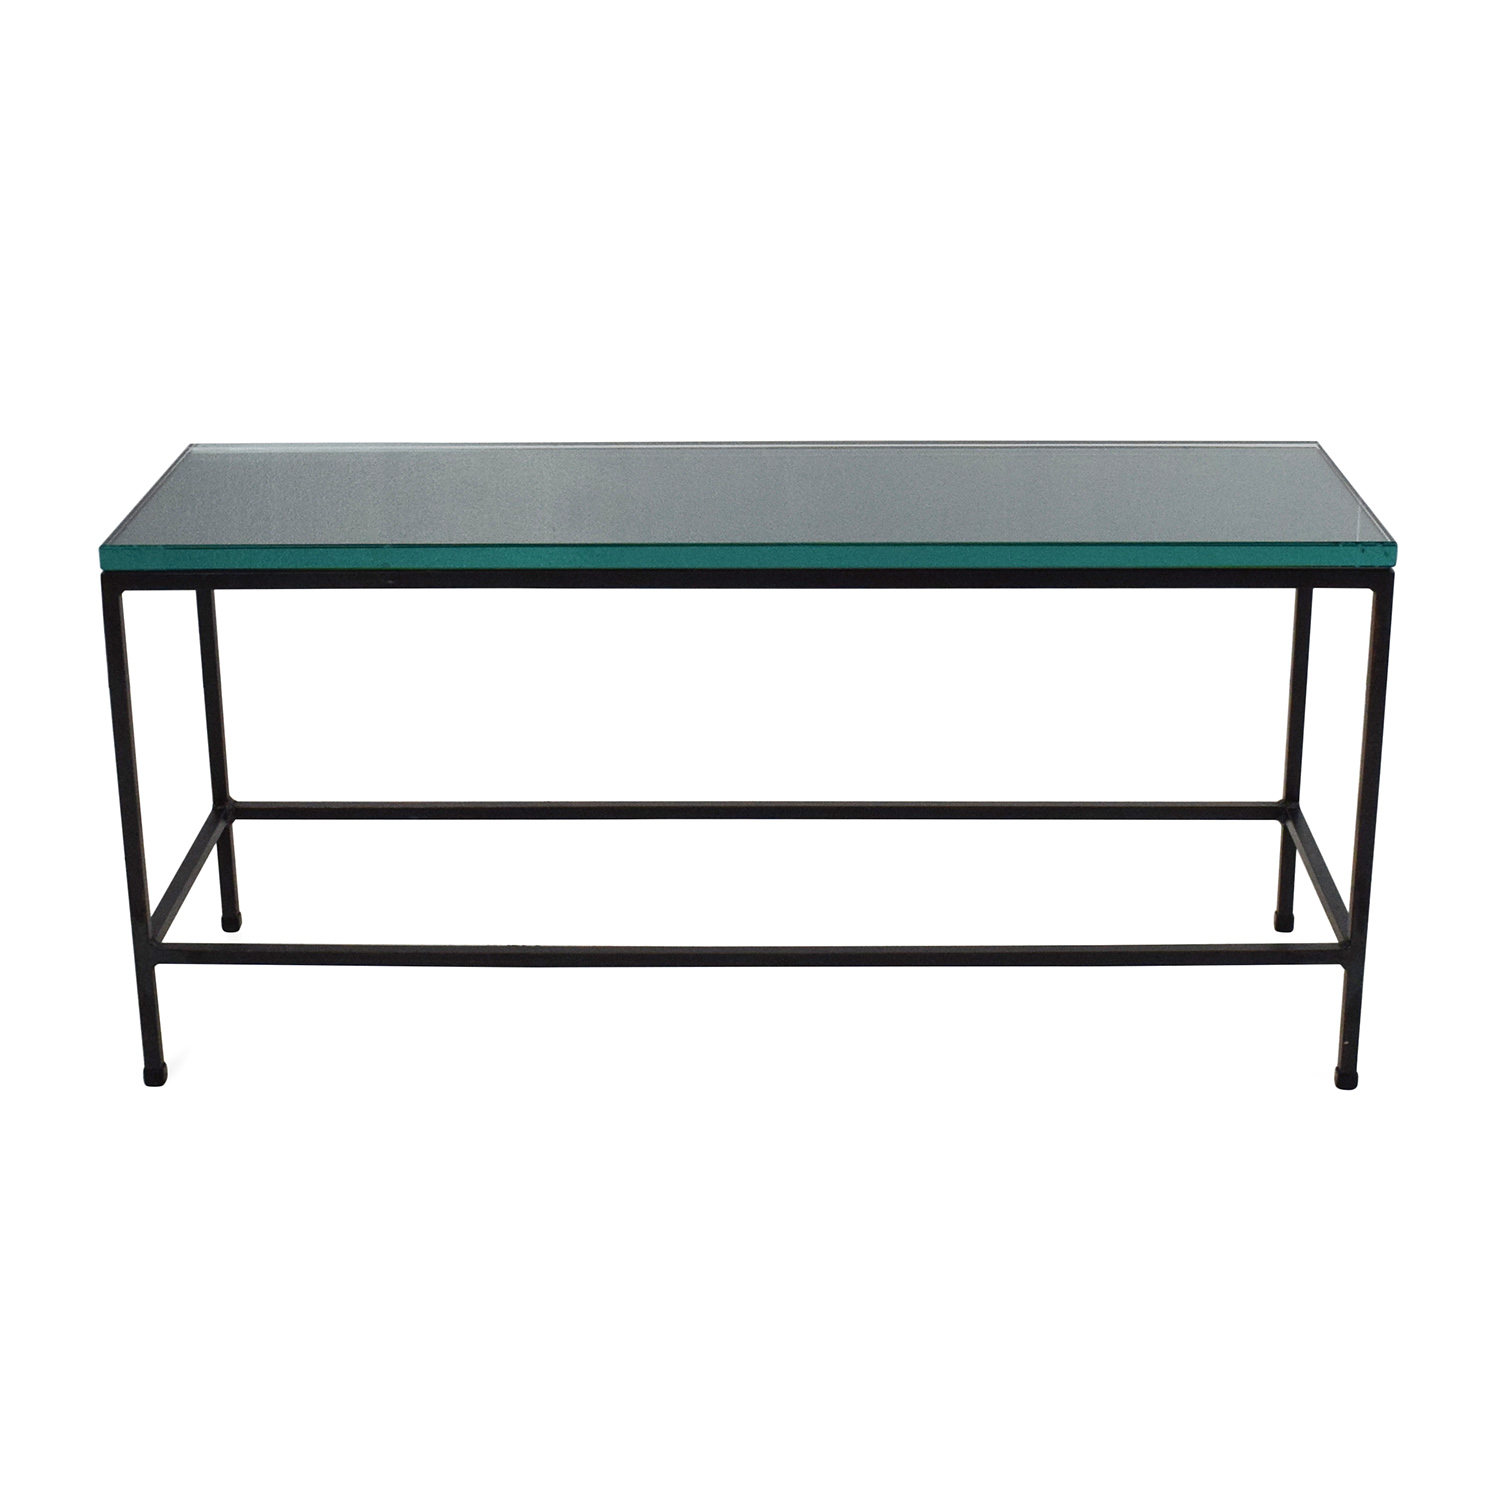 CB2 Glass Top Coffee Table Sale ...